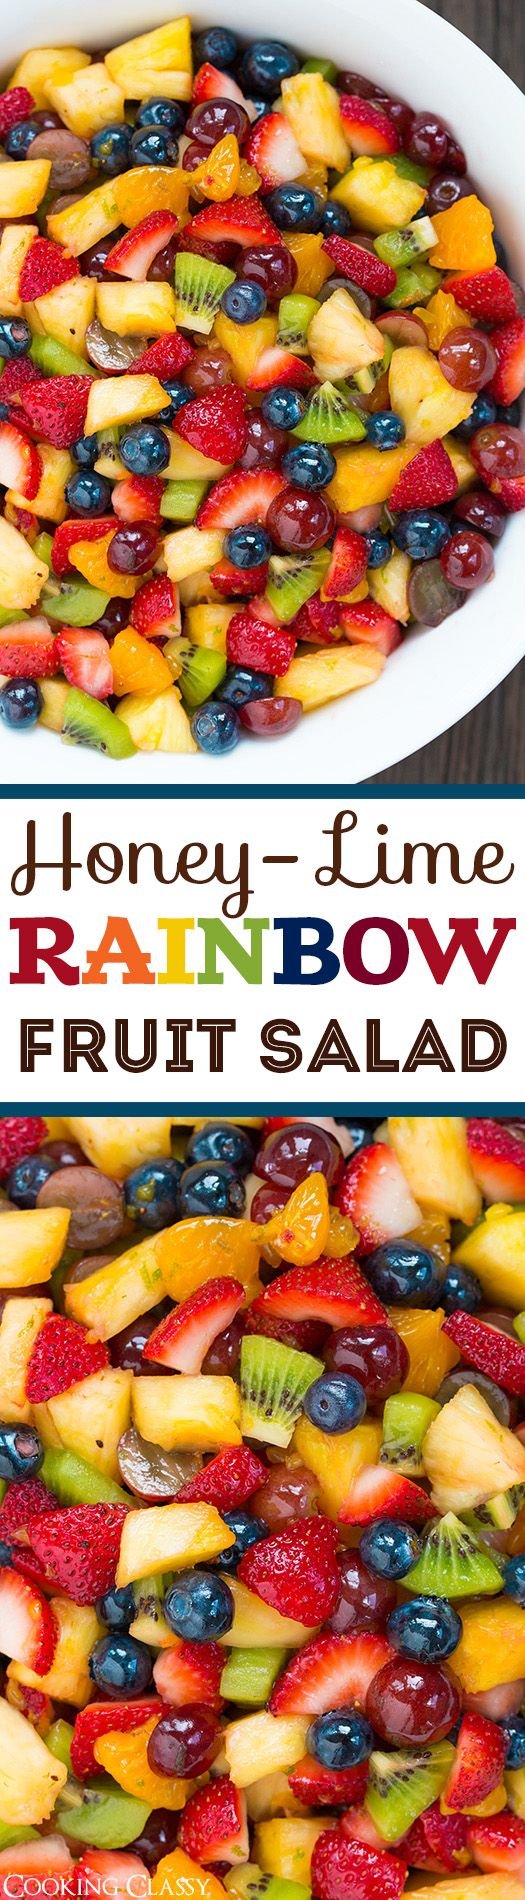 Honey Lime Rainbow Fruit Salad - perfect use for all the fresh summer fruit! Love that the dressing compliments the fruit rather then overwhelms it.